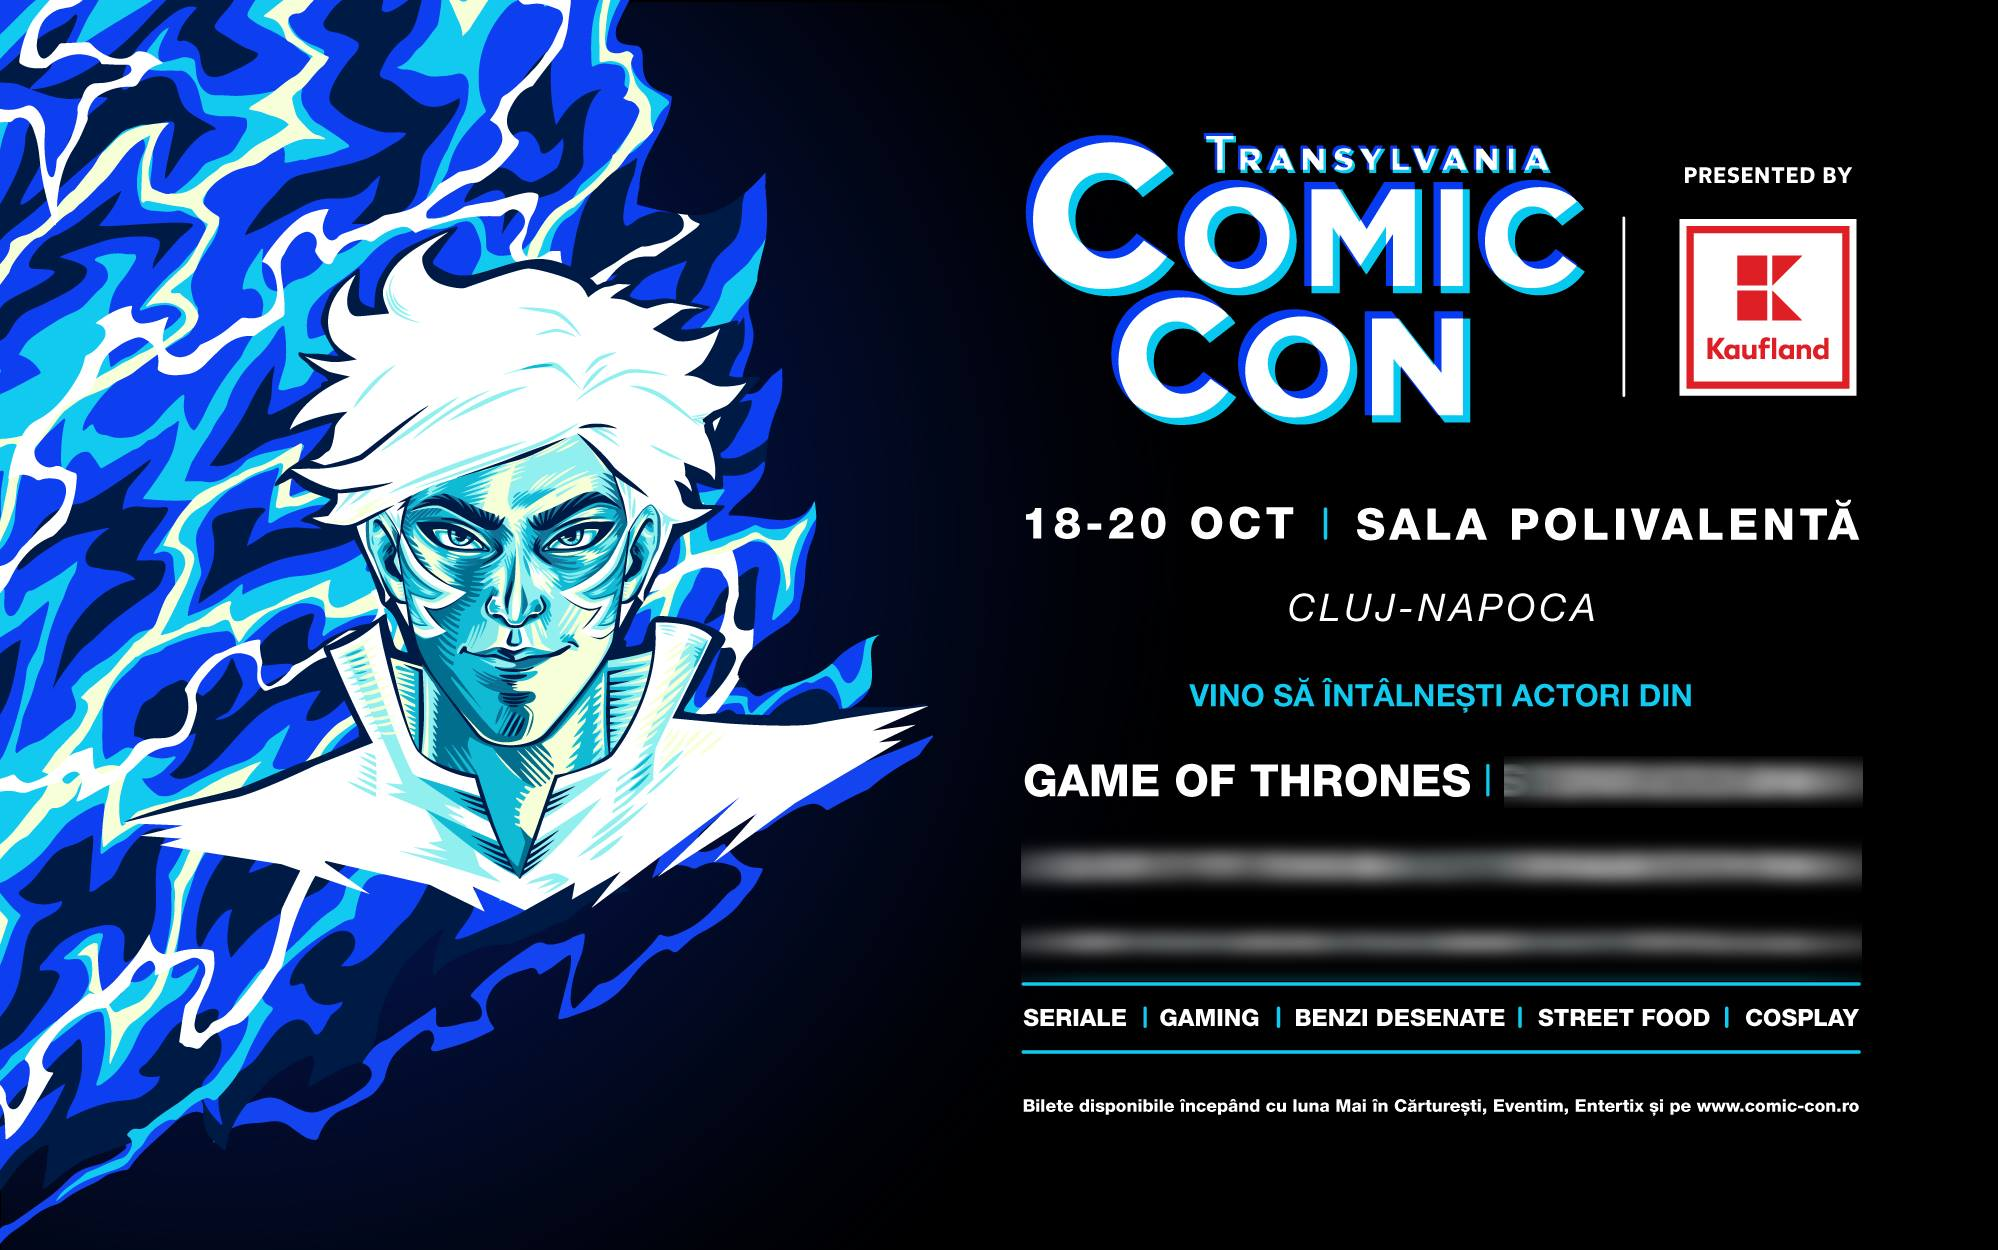 Actori din Game of Thrones vin la Cluj-Napoca, la Transylvania Comic Con!